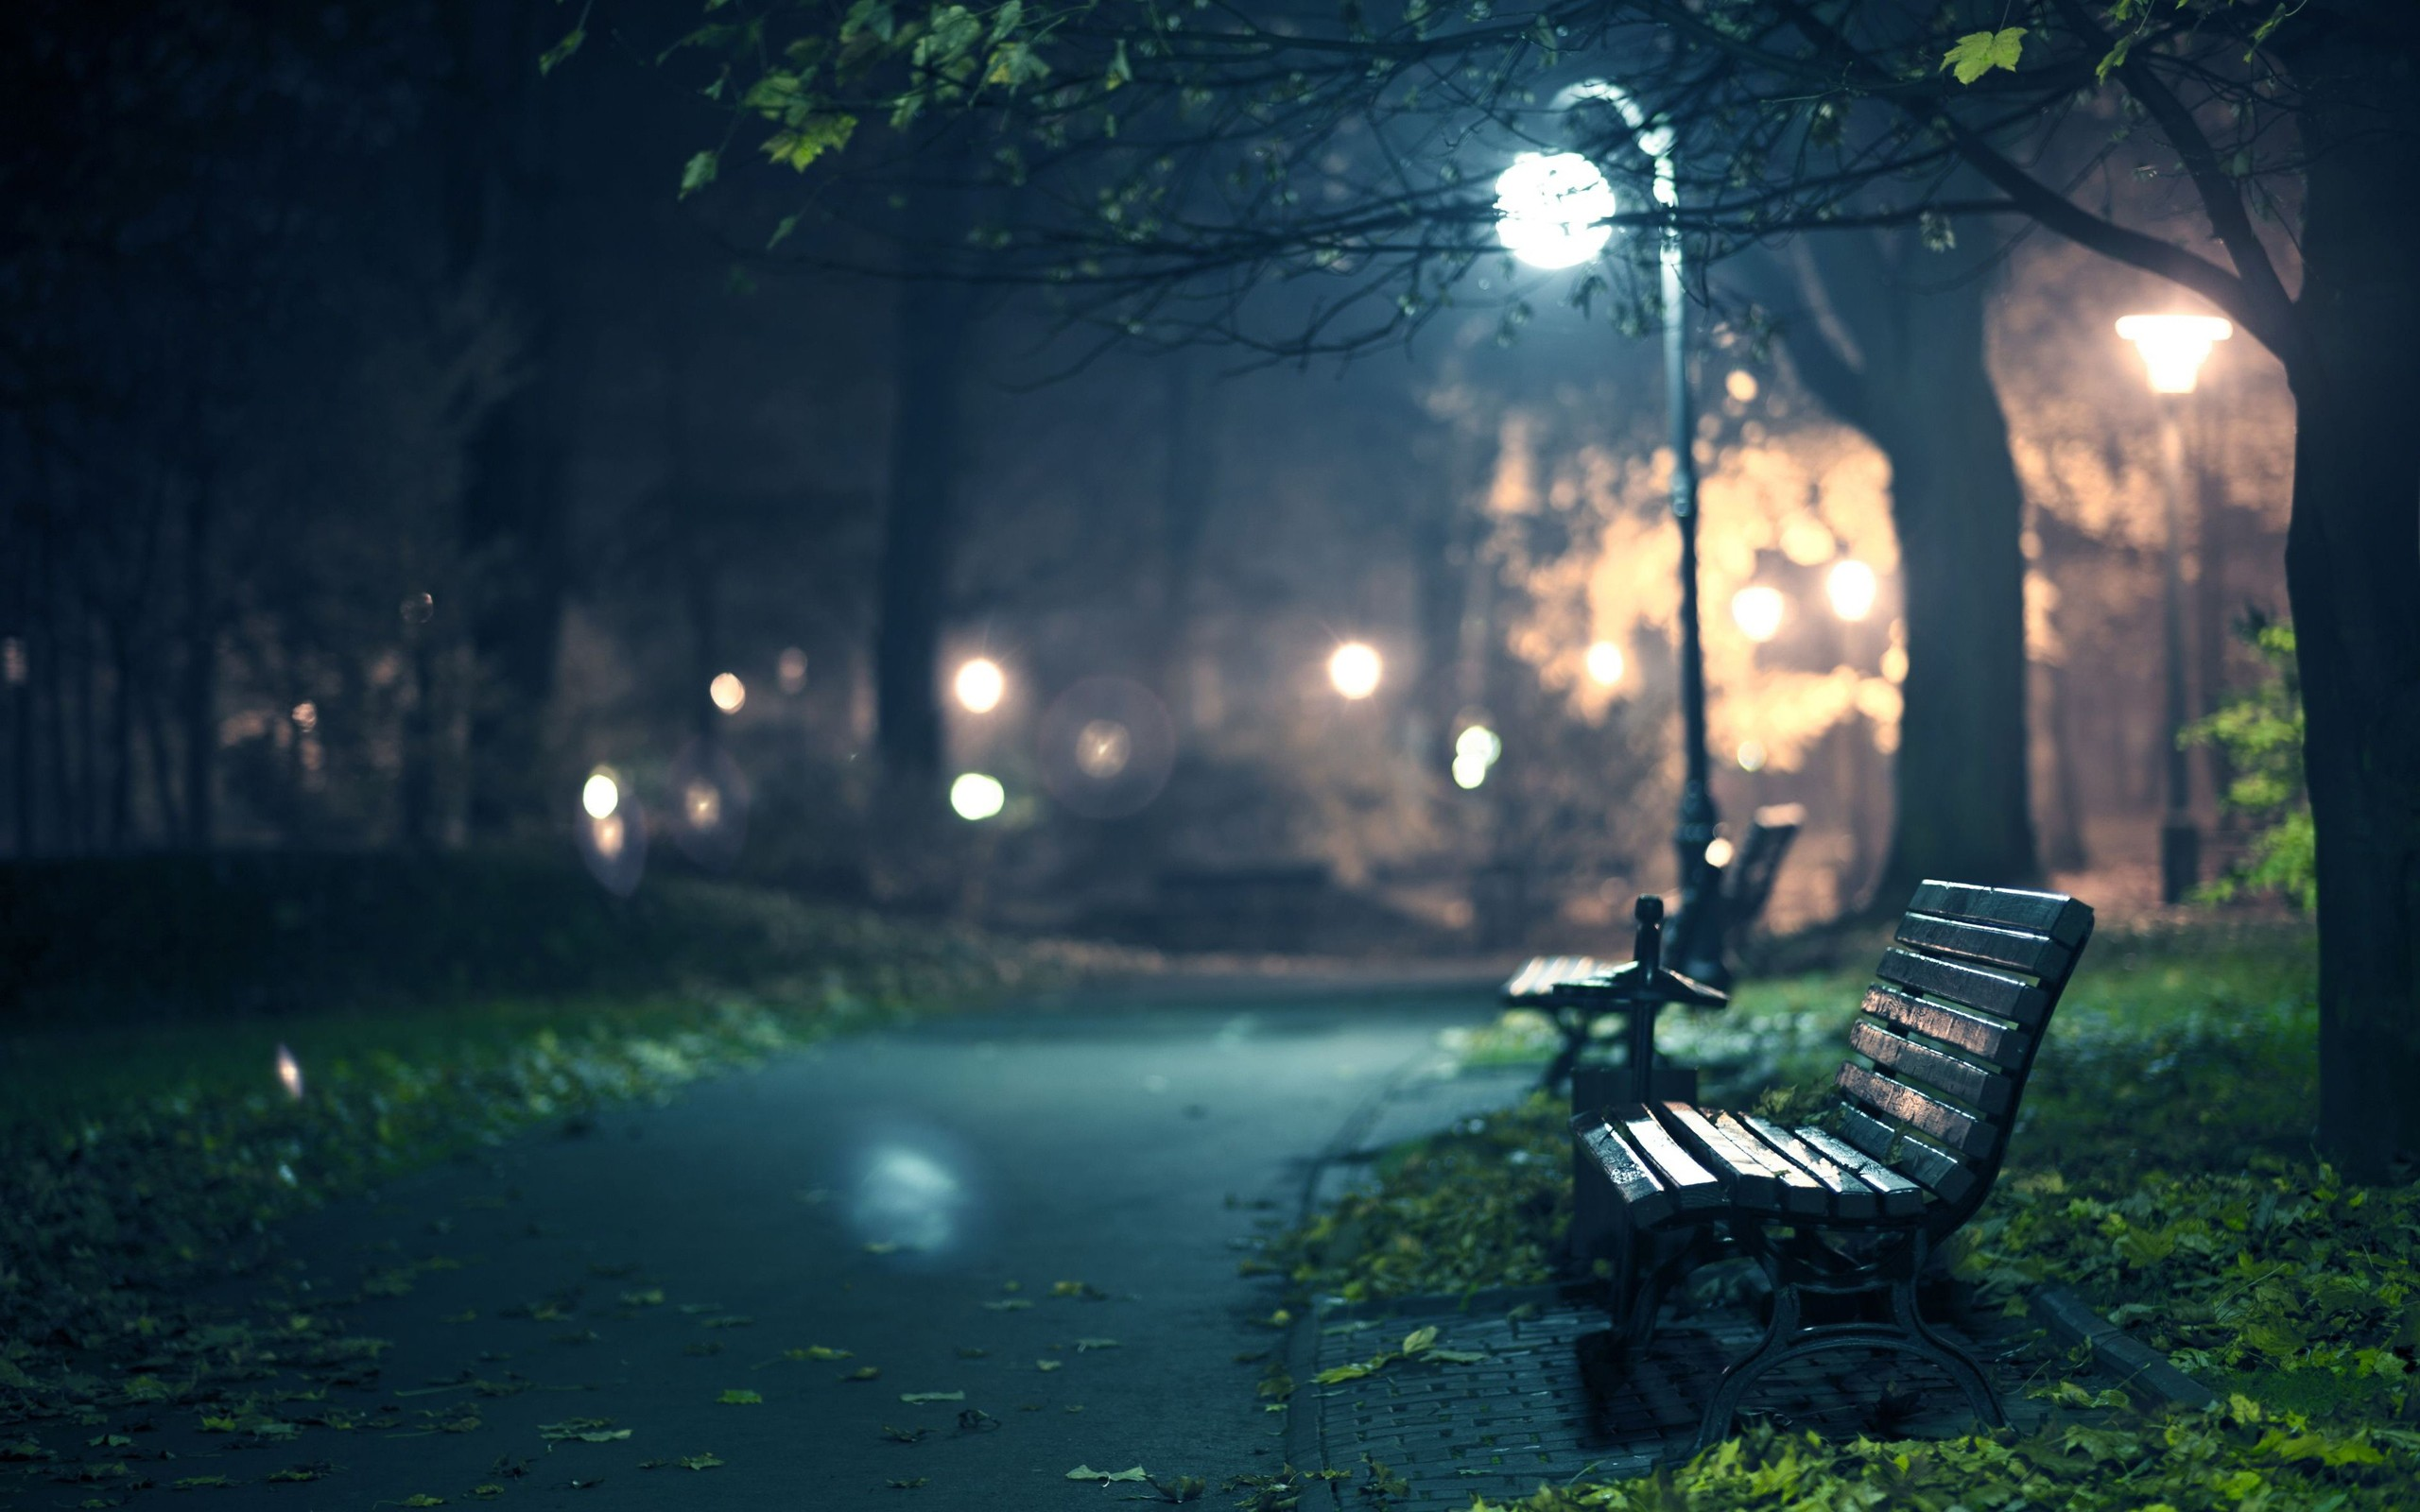 Night Lights in a Park